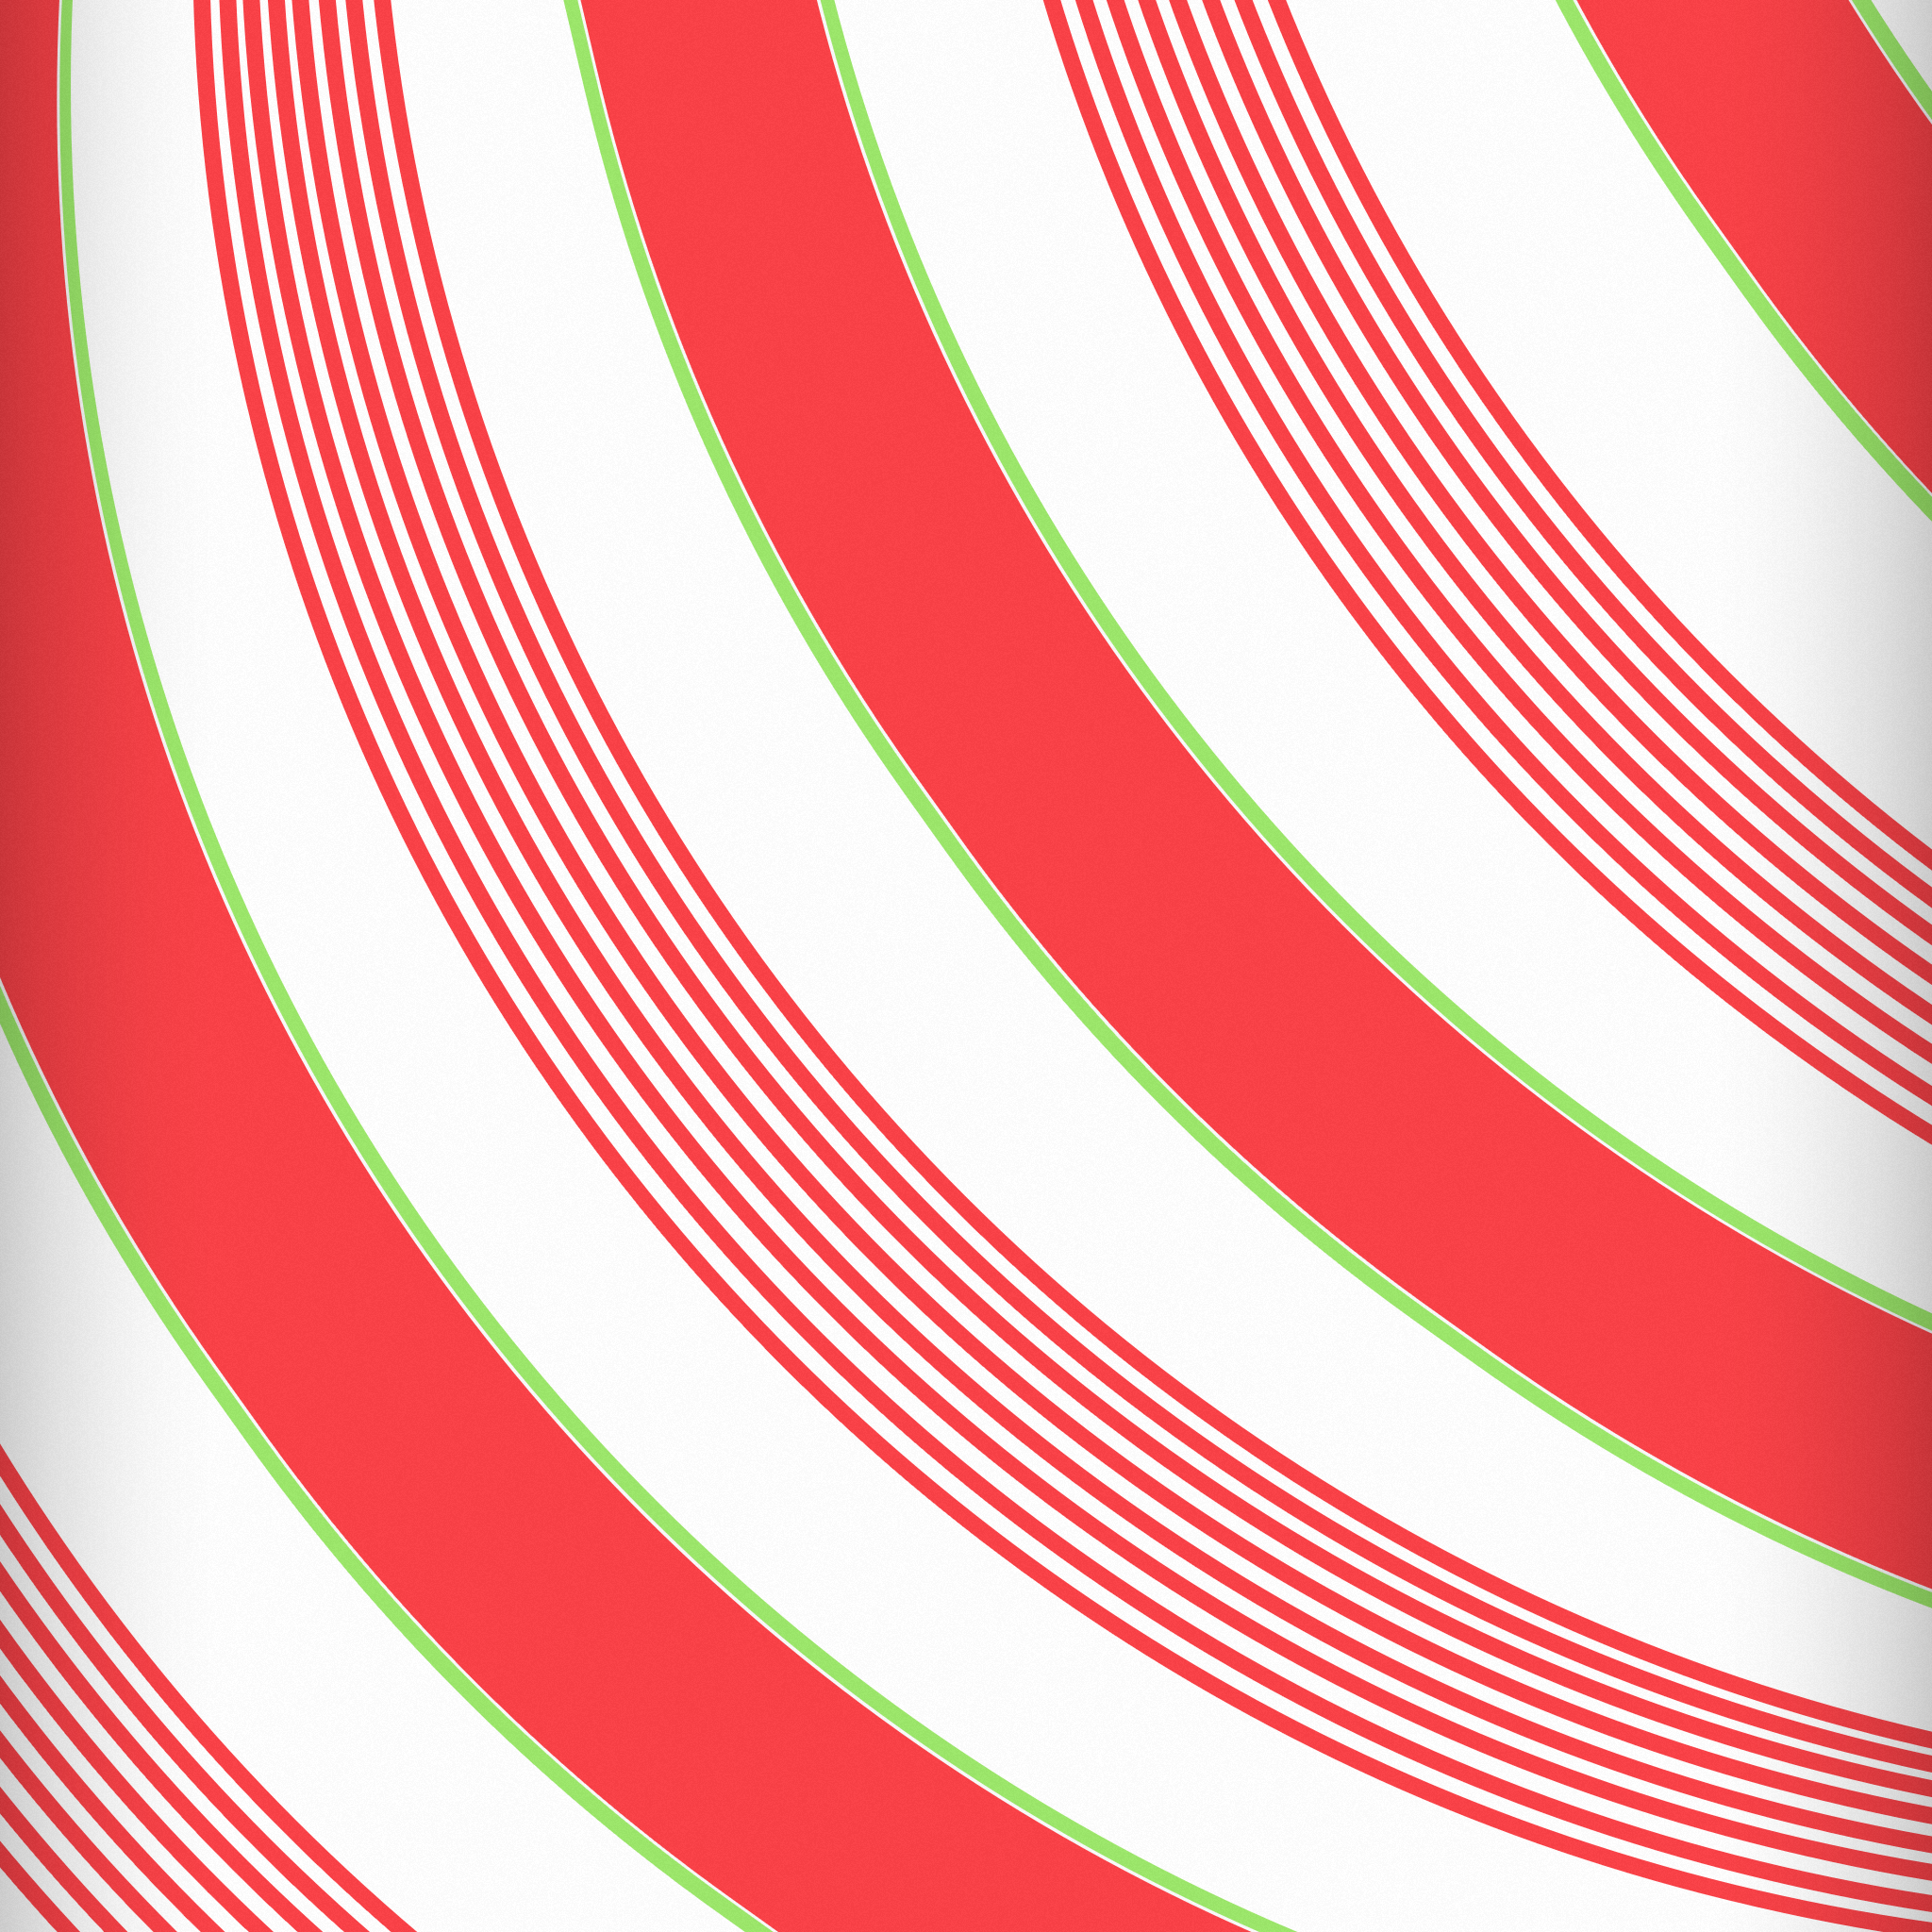 candy cane backgrounds wallpapersafari